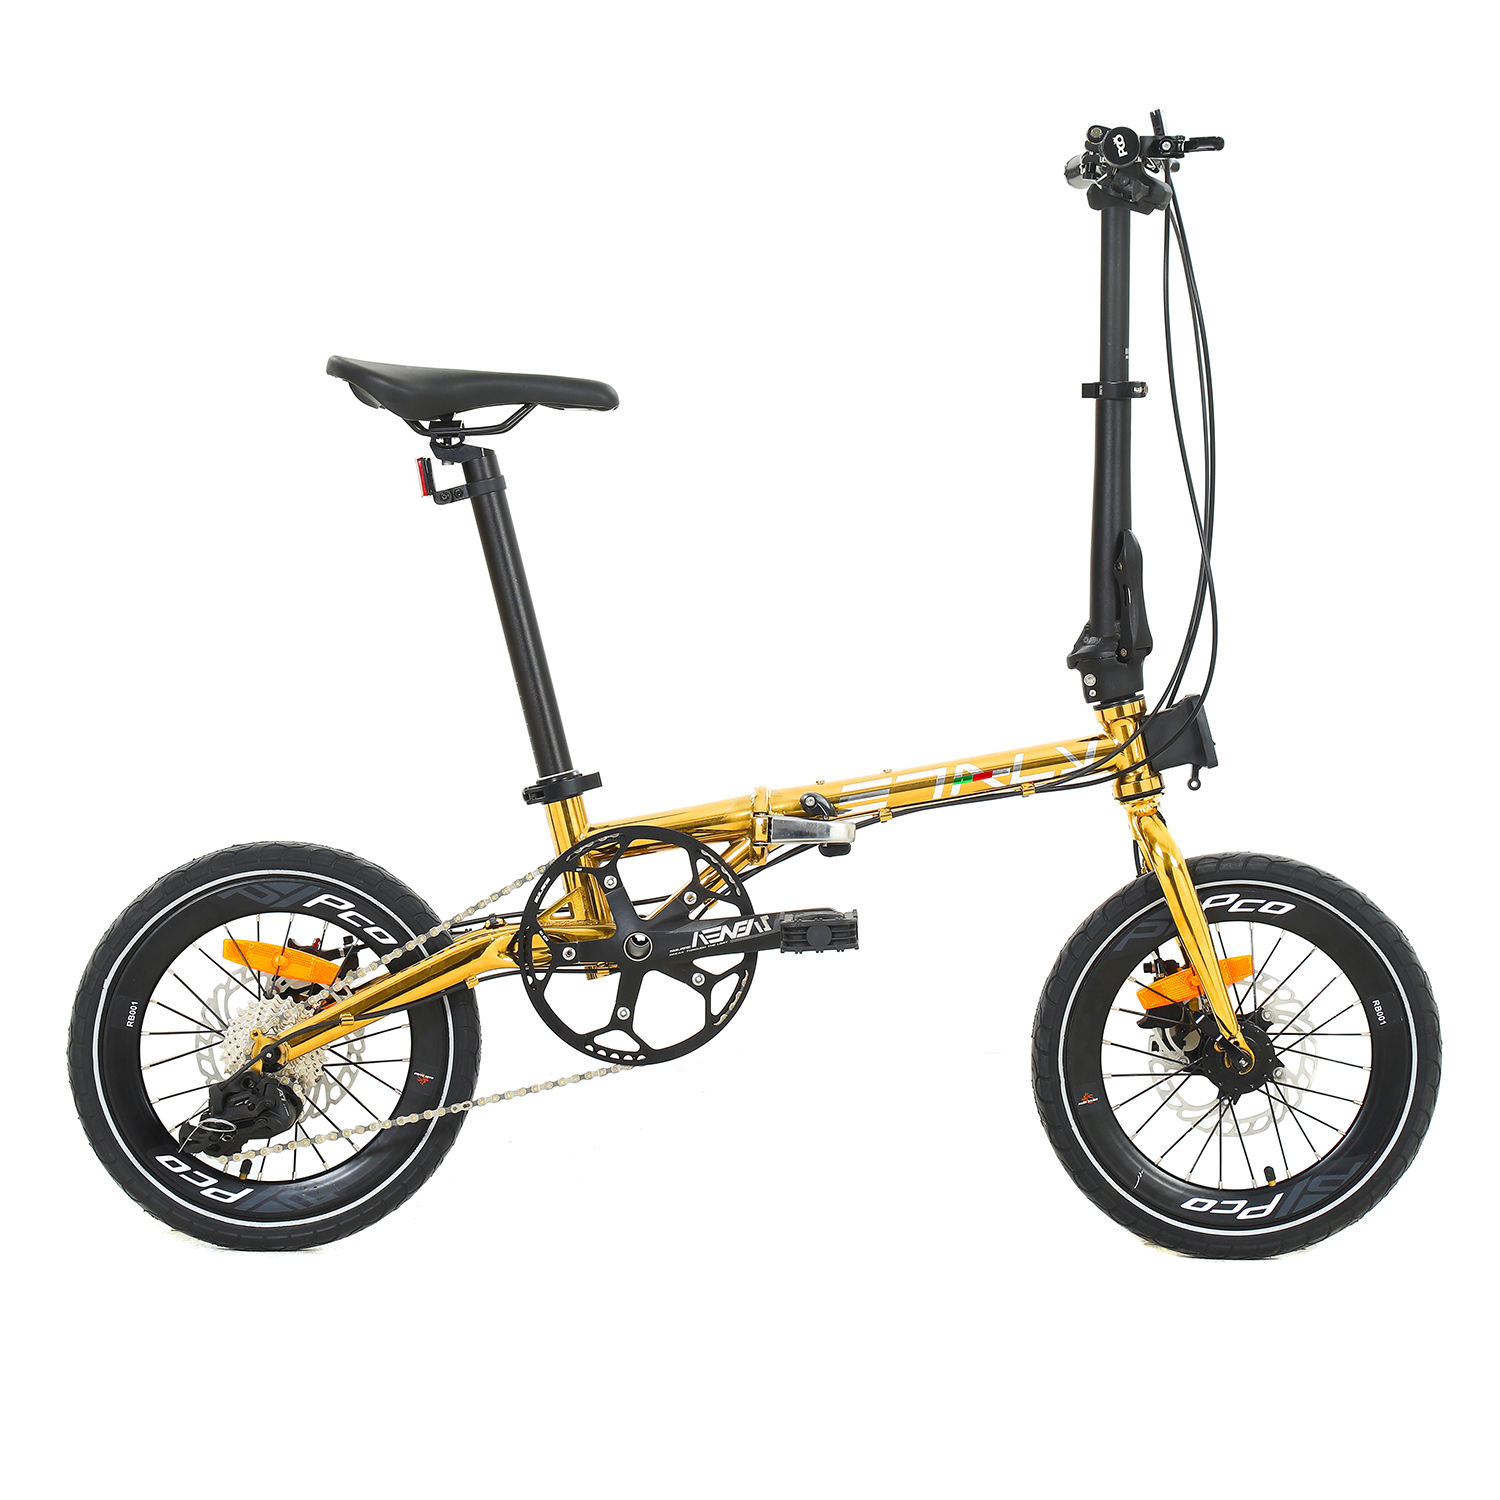 10 Speed Folding Bike 16 Inch Disc Brake bicycle 4130 steel Portable Male and Female Adult Student 406 folding Bicycle